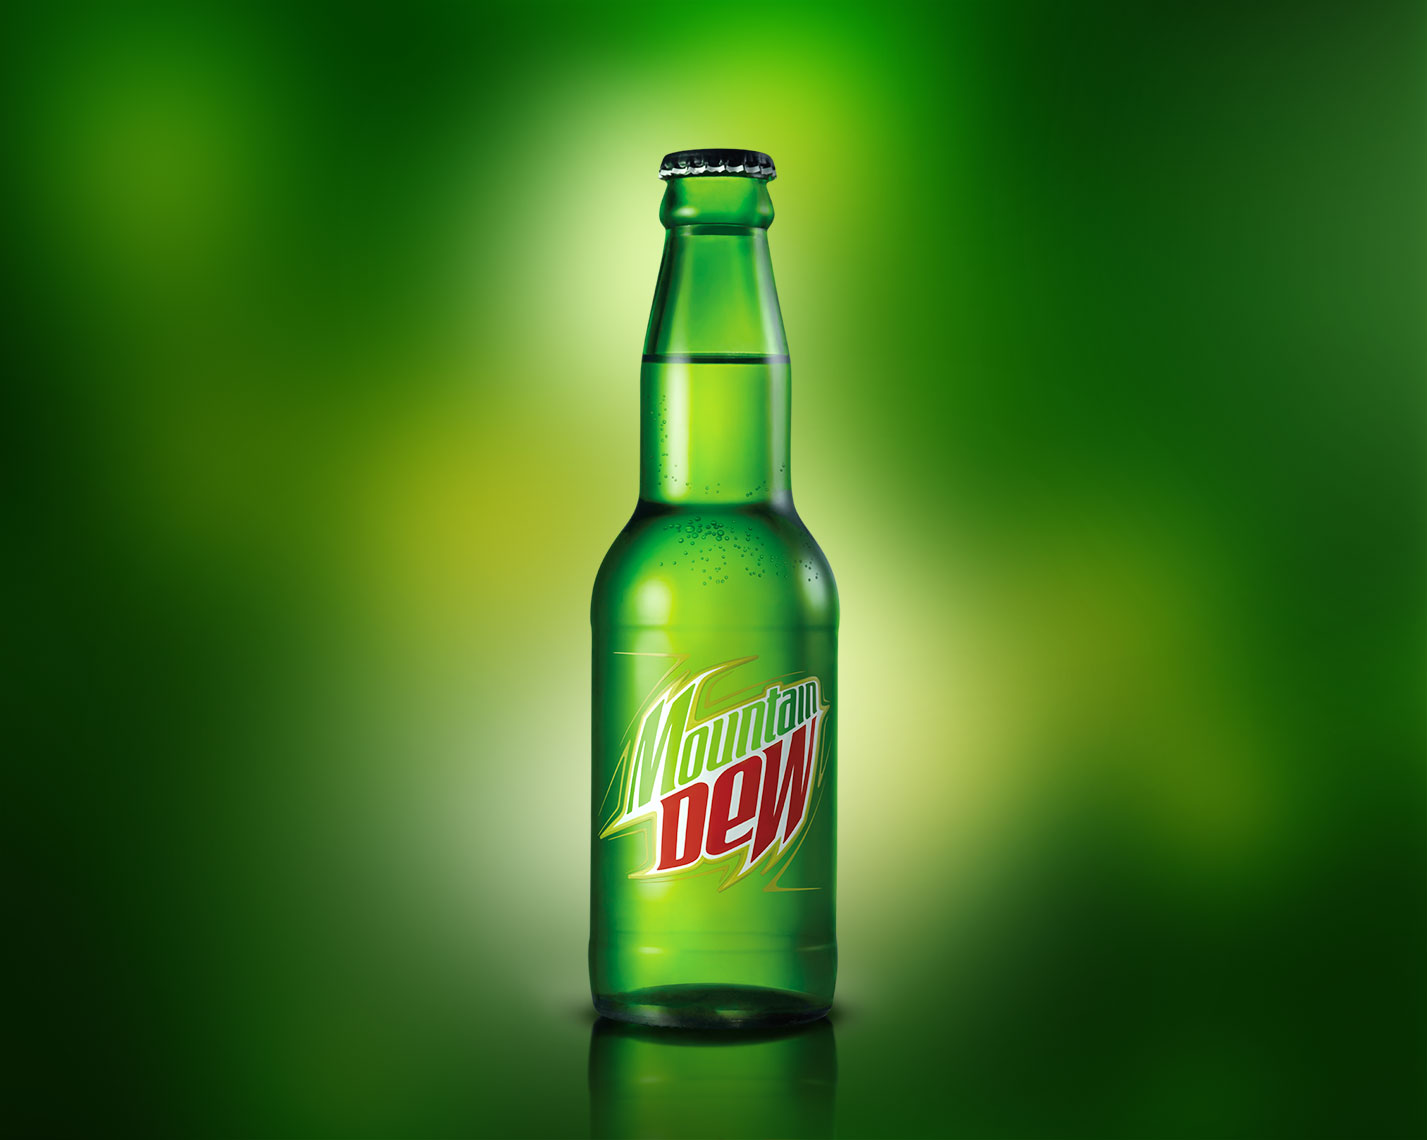 P050_Mountain_Dew_bottle_Bite_Studio_Wing_Chan